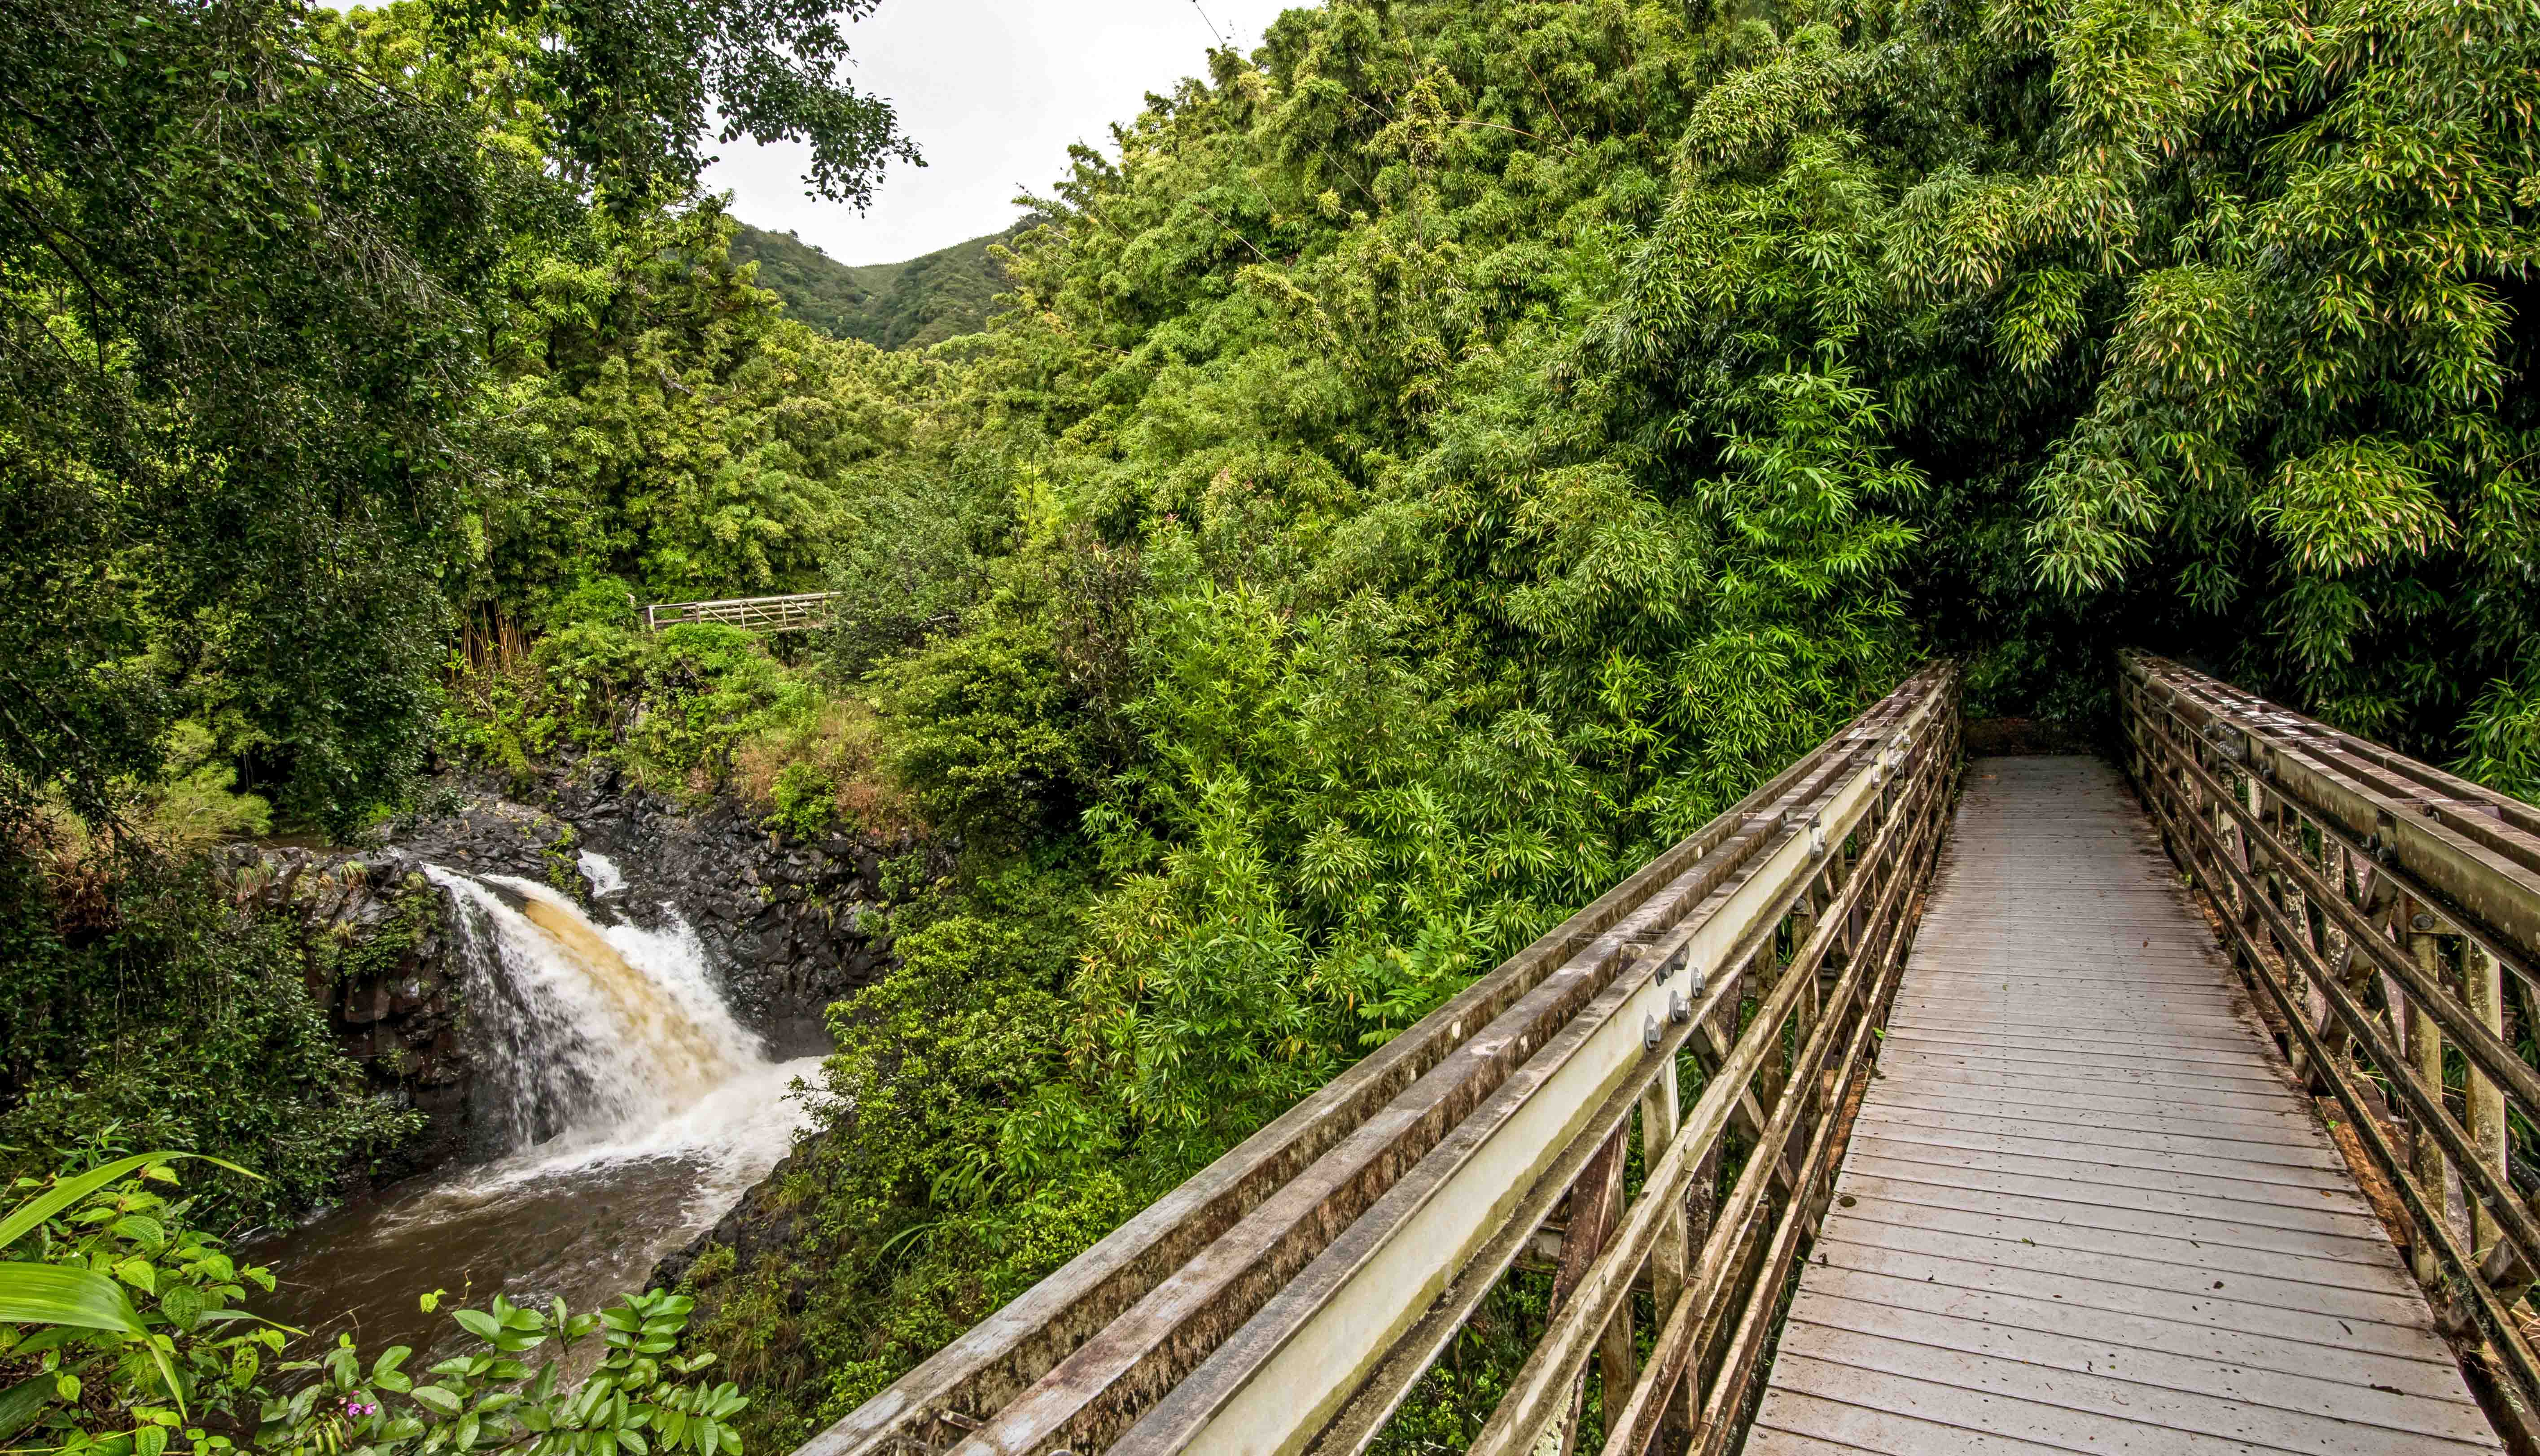 The Pipiwai Trail Bridge leads into the bamboo forest